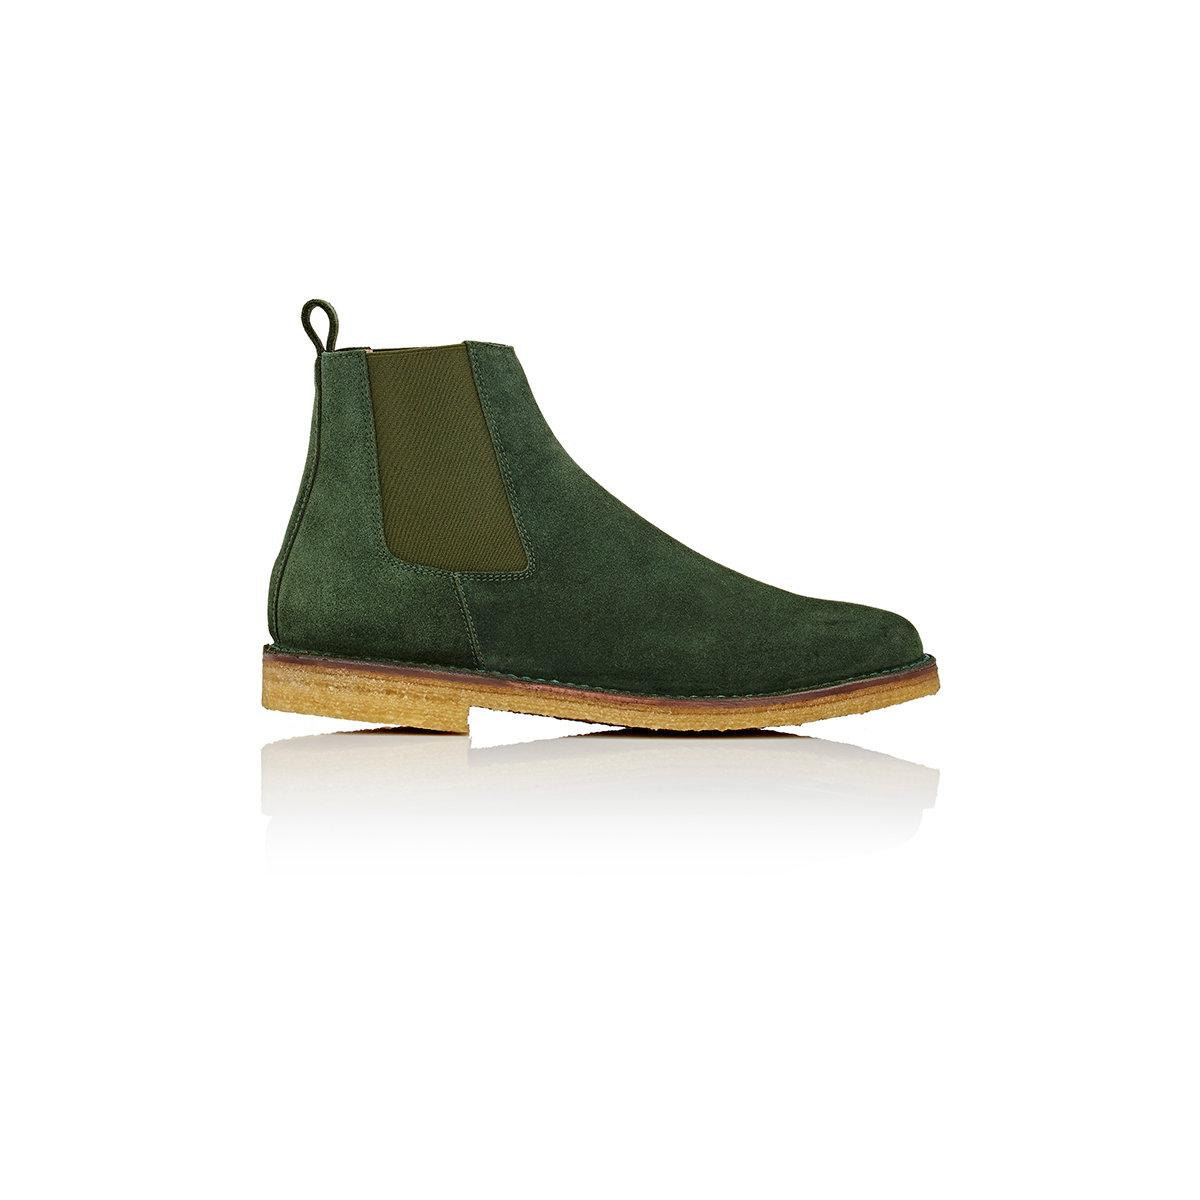 Barneys New York Crepe Sole Chelsea Boots In Green For Men